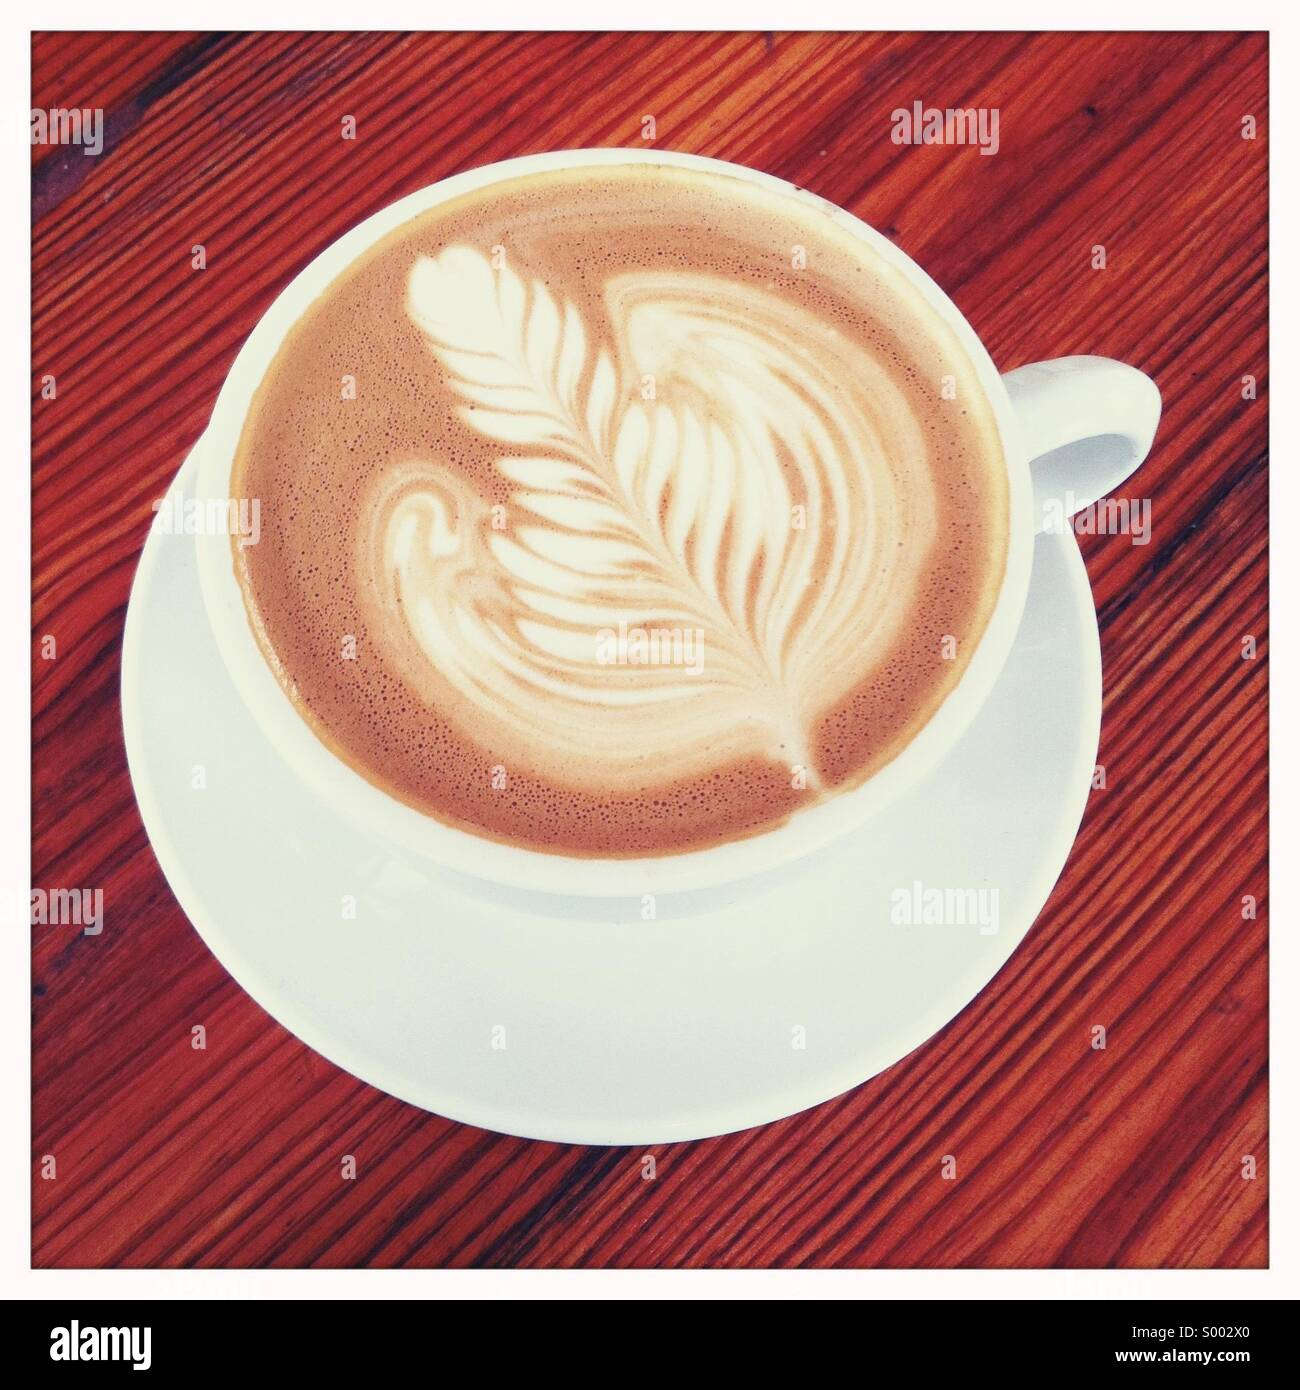 Looking down on a coffee drink in cup with a decorated garnish - Stock Image